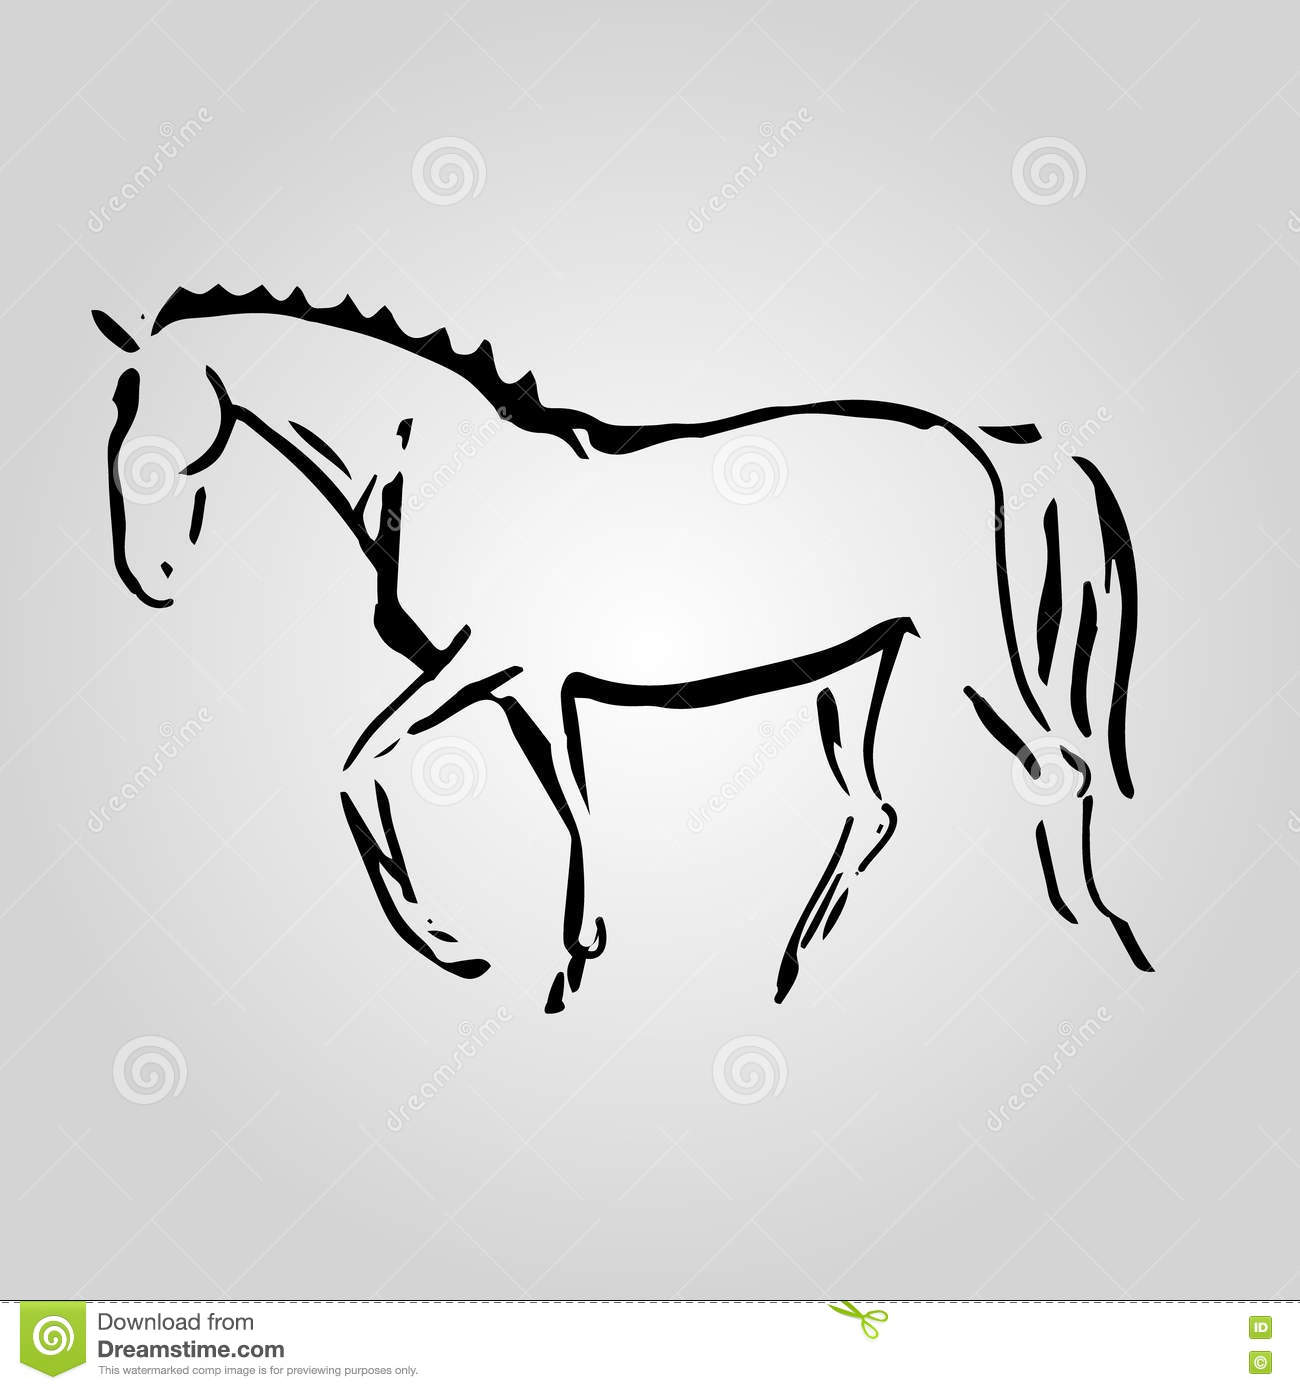 The Symbol Of The Horse 3 Stock Vector Illustration Of Animal